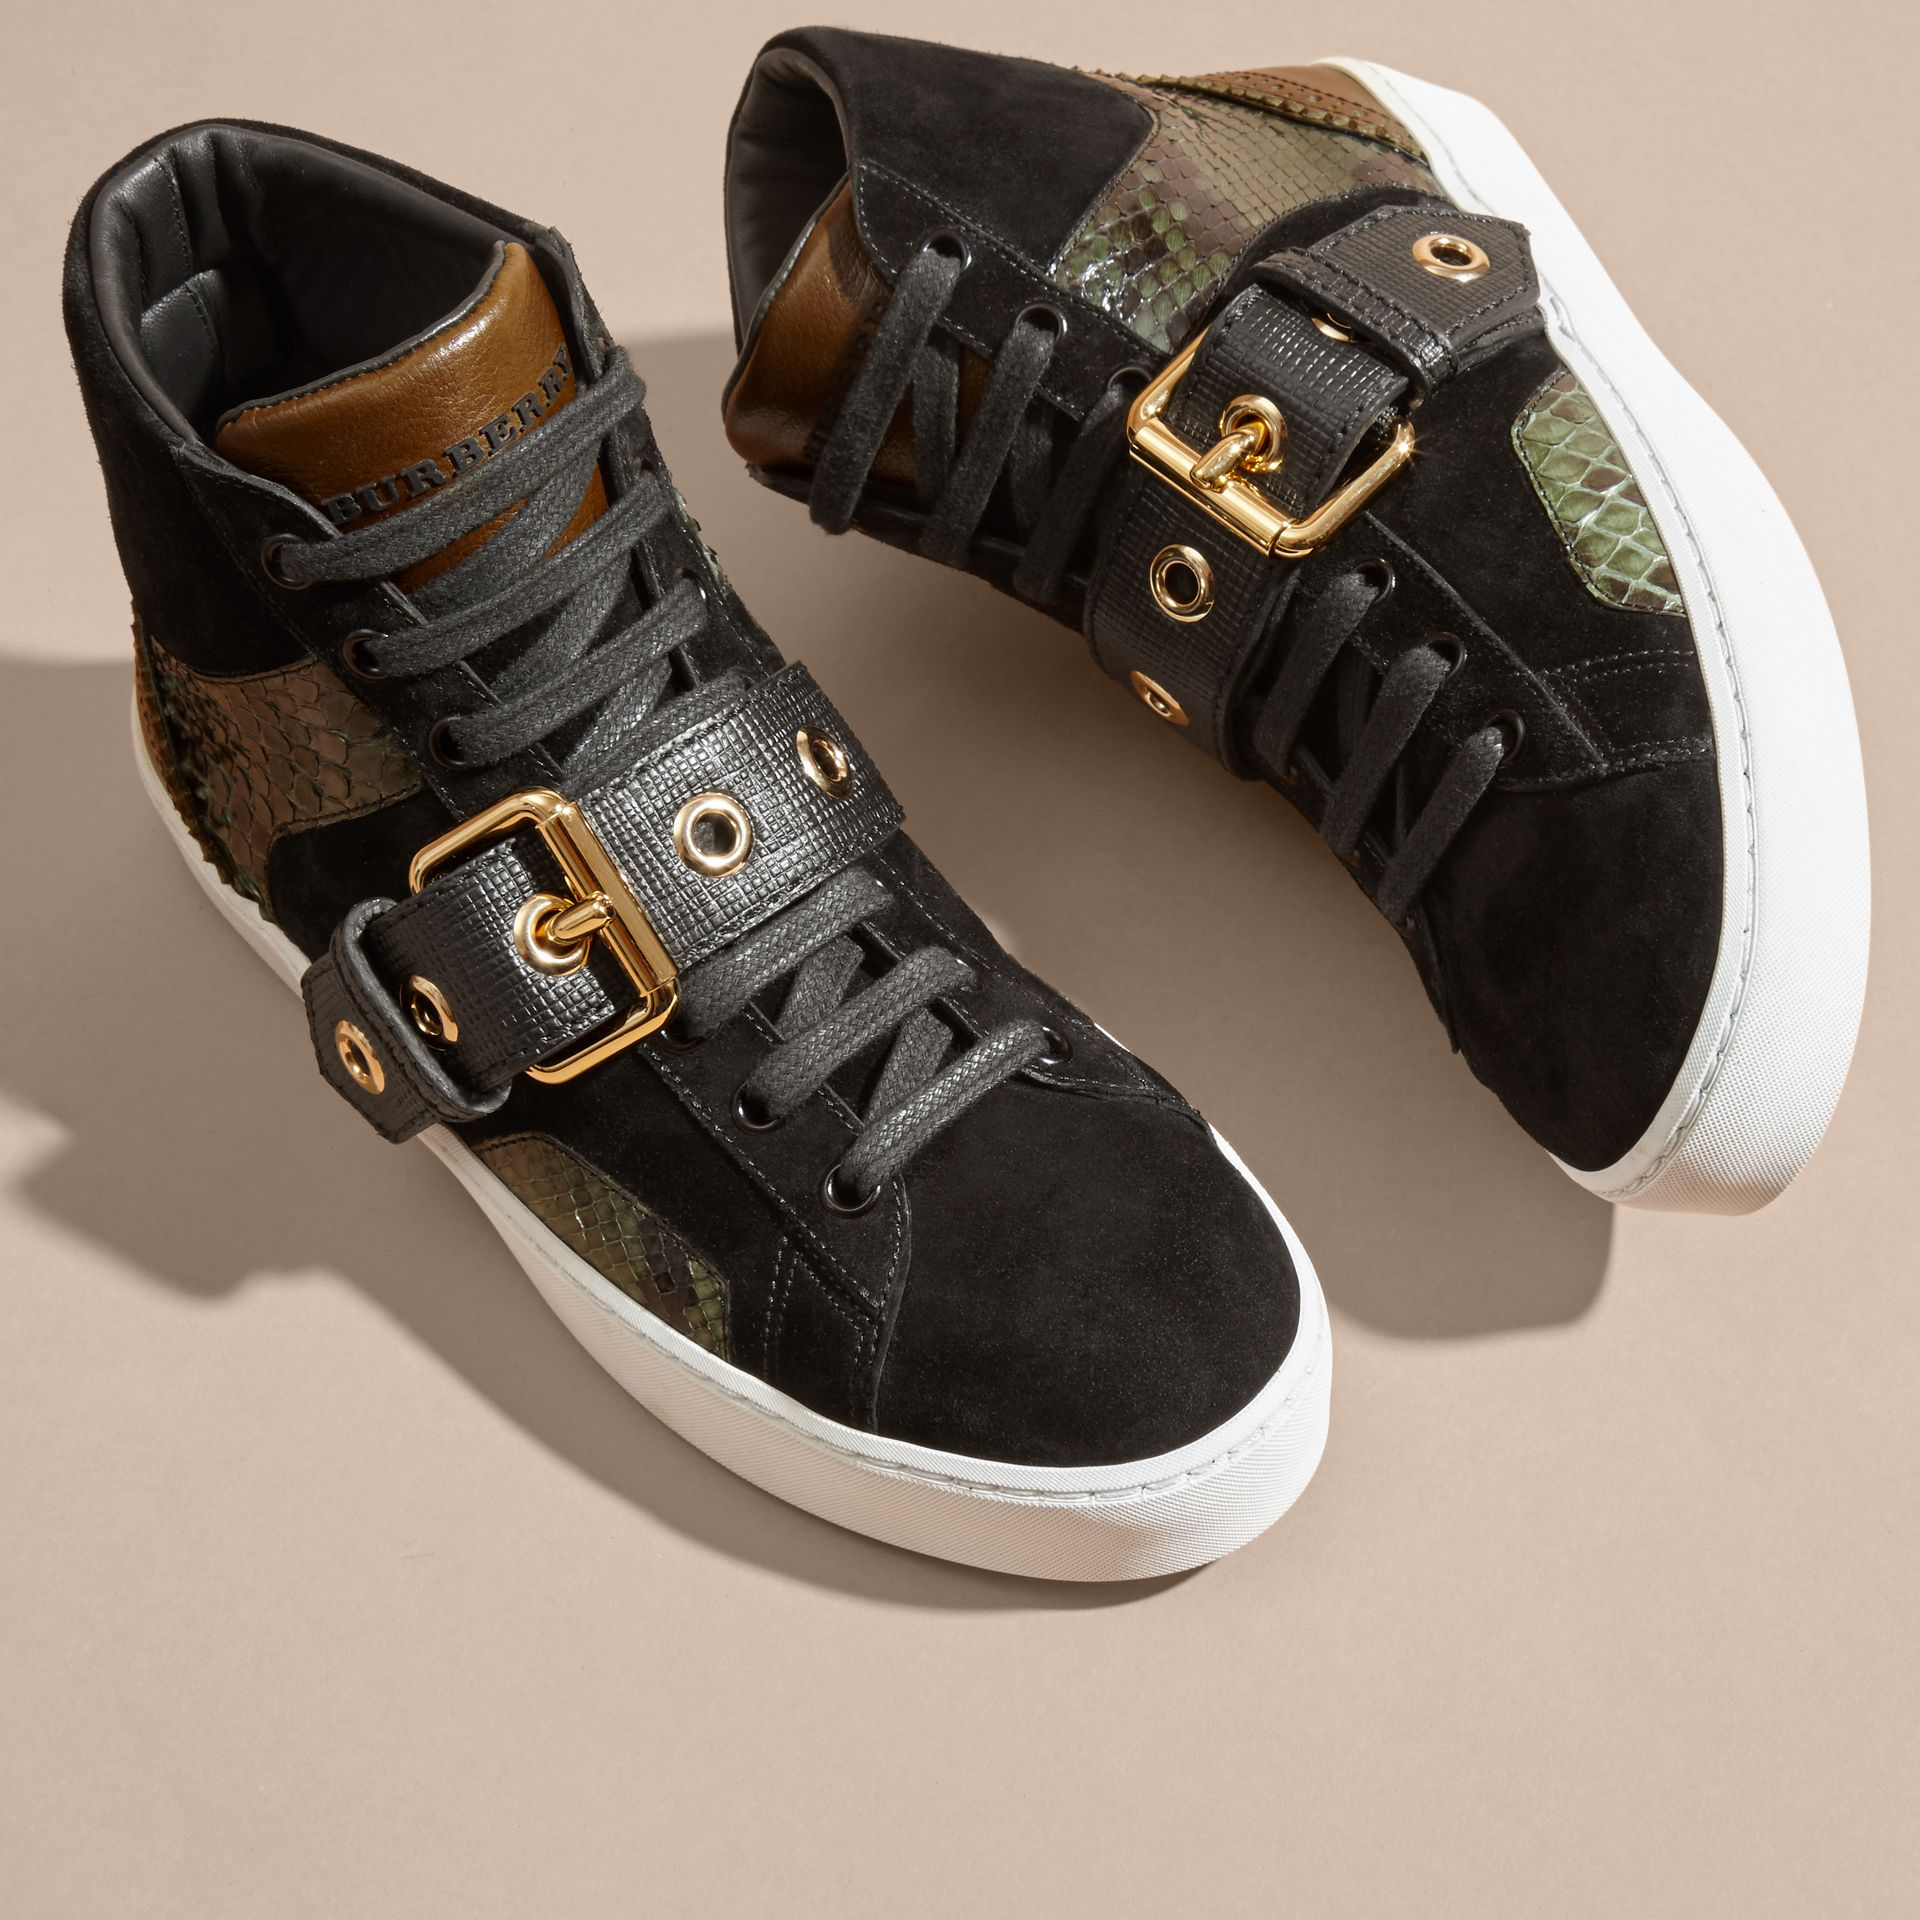 Military olive Buckle Detail Leather and Snakeskin High-top Trainers Military Olive - gallery image 3